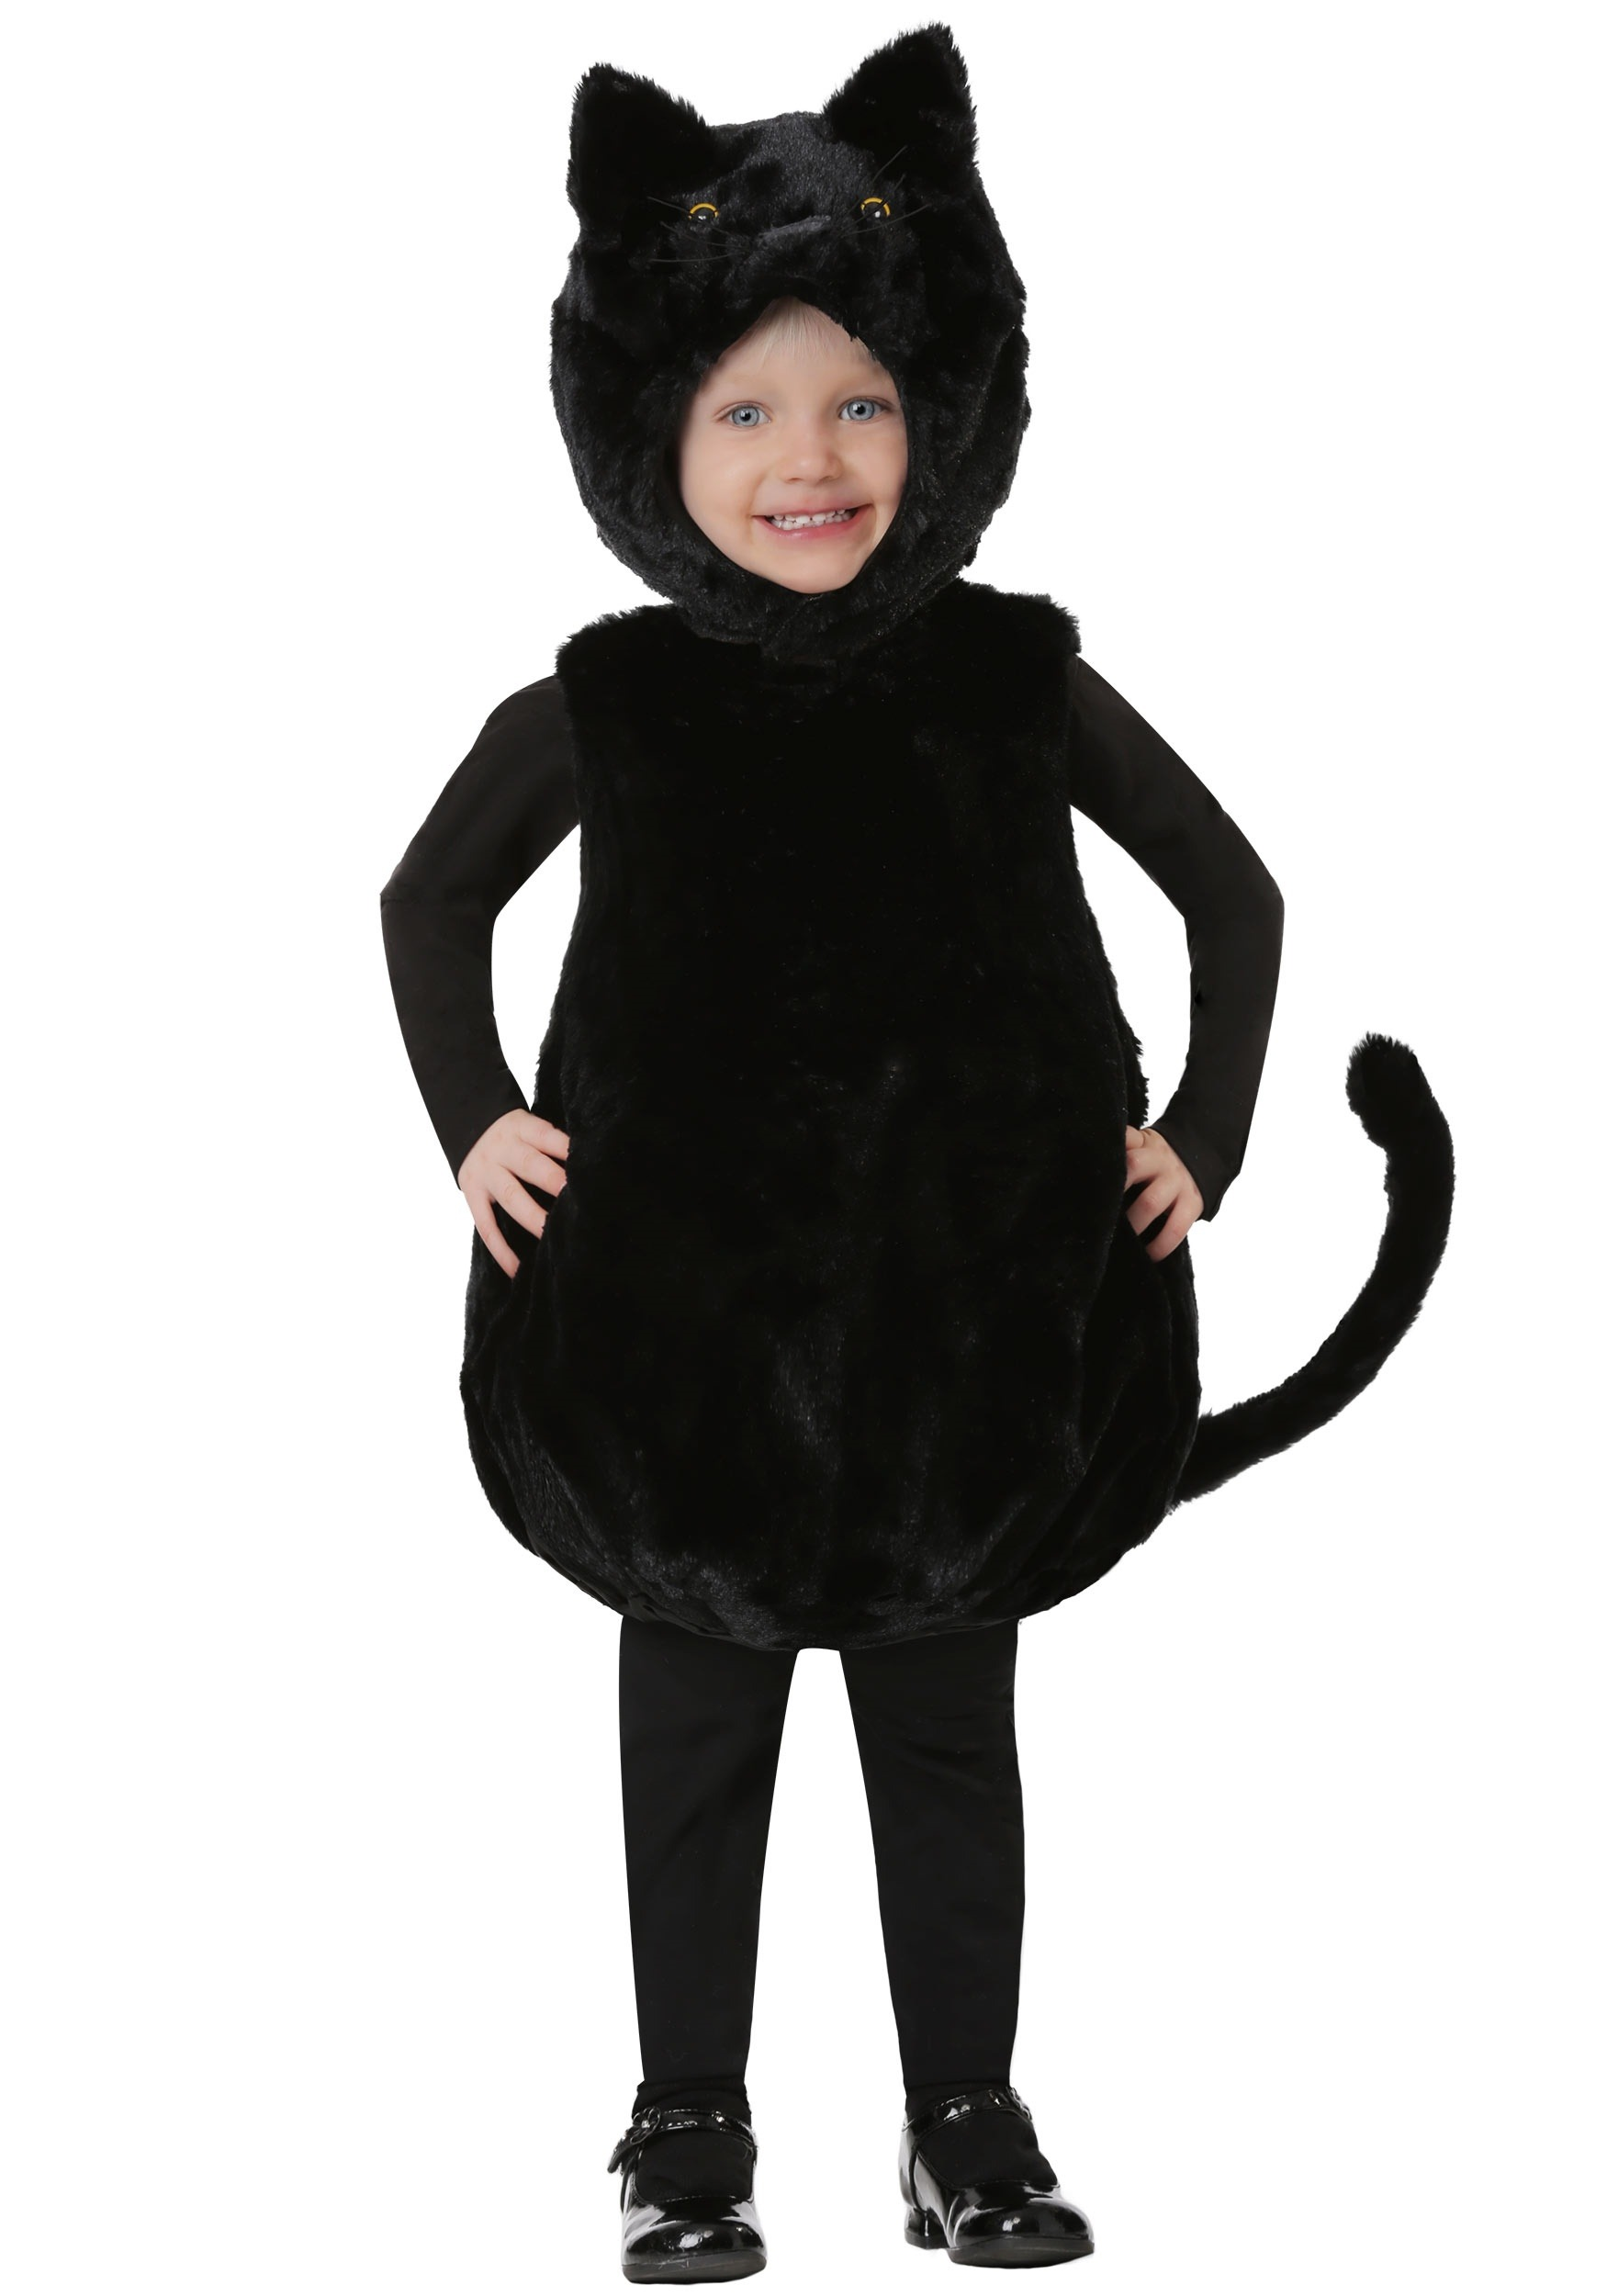 Bubble Body Black Kitty Costume for a Toddler